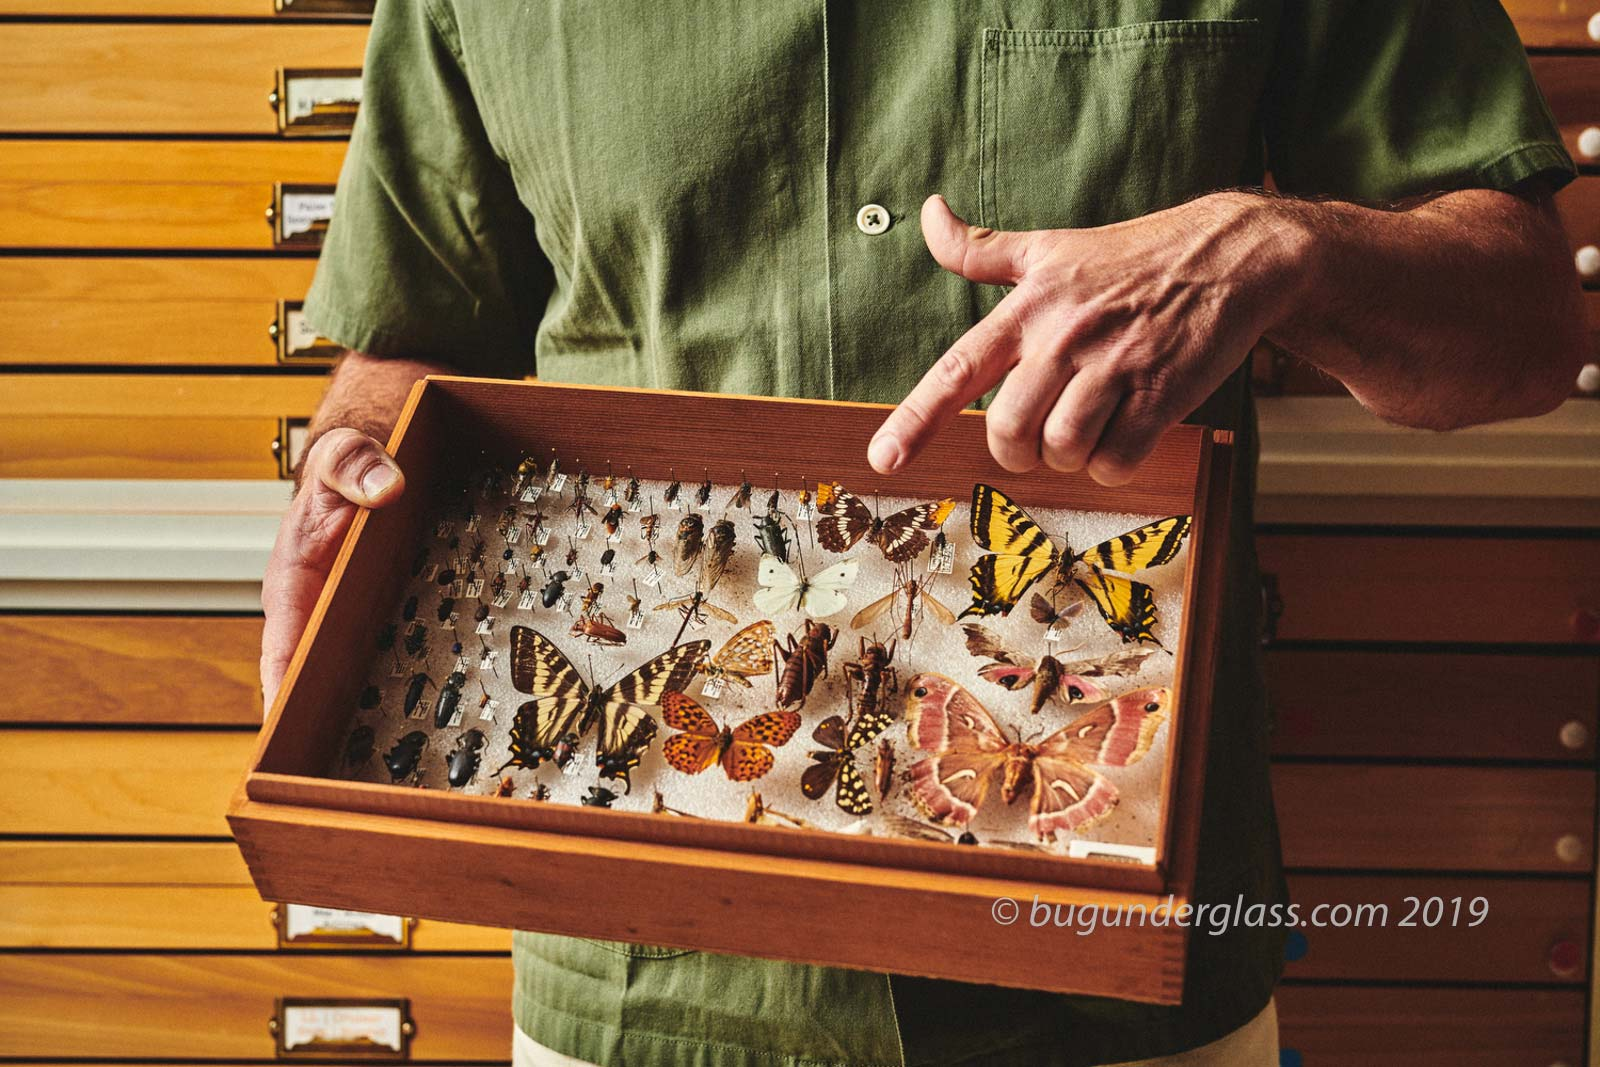 pointing to insect collection